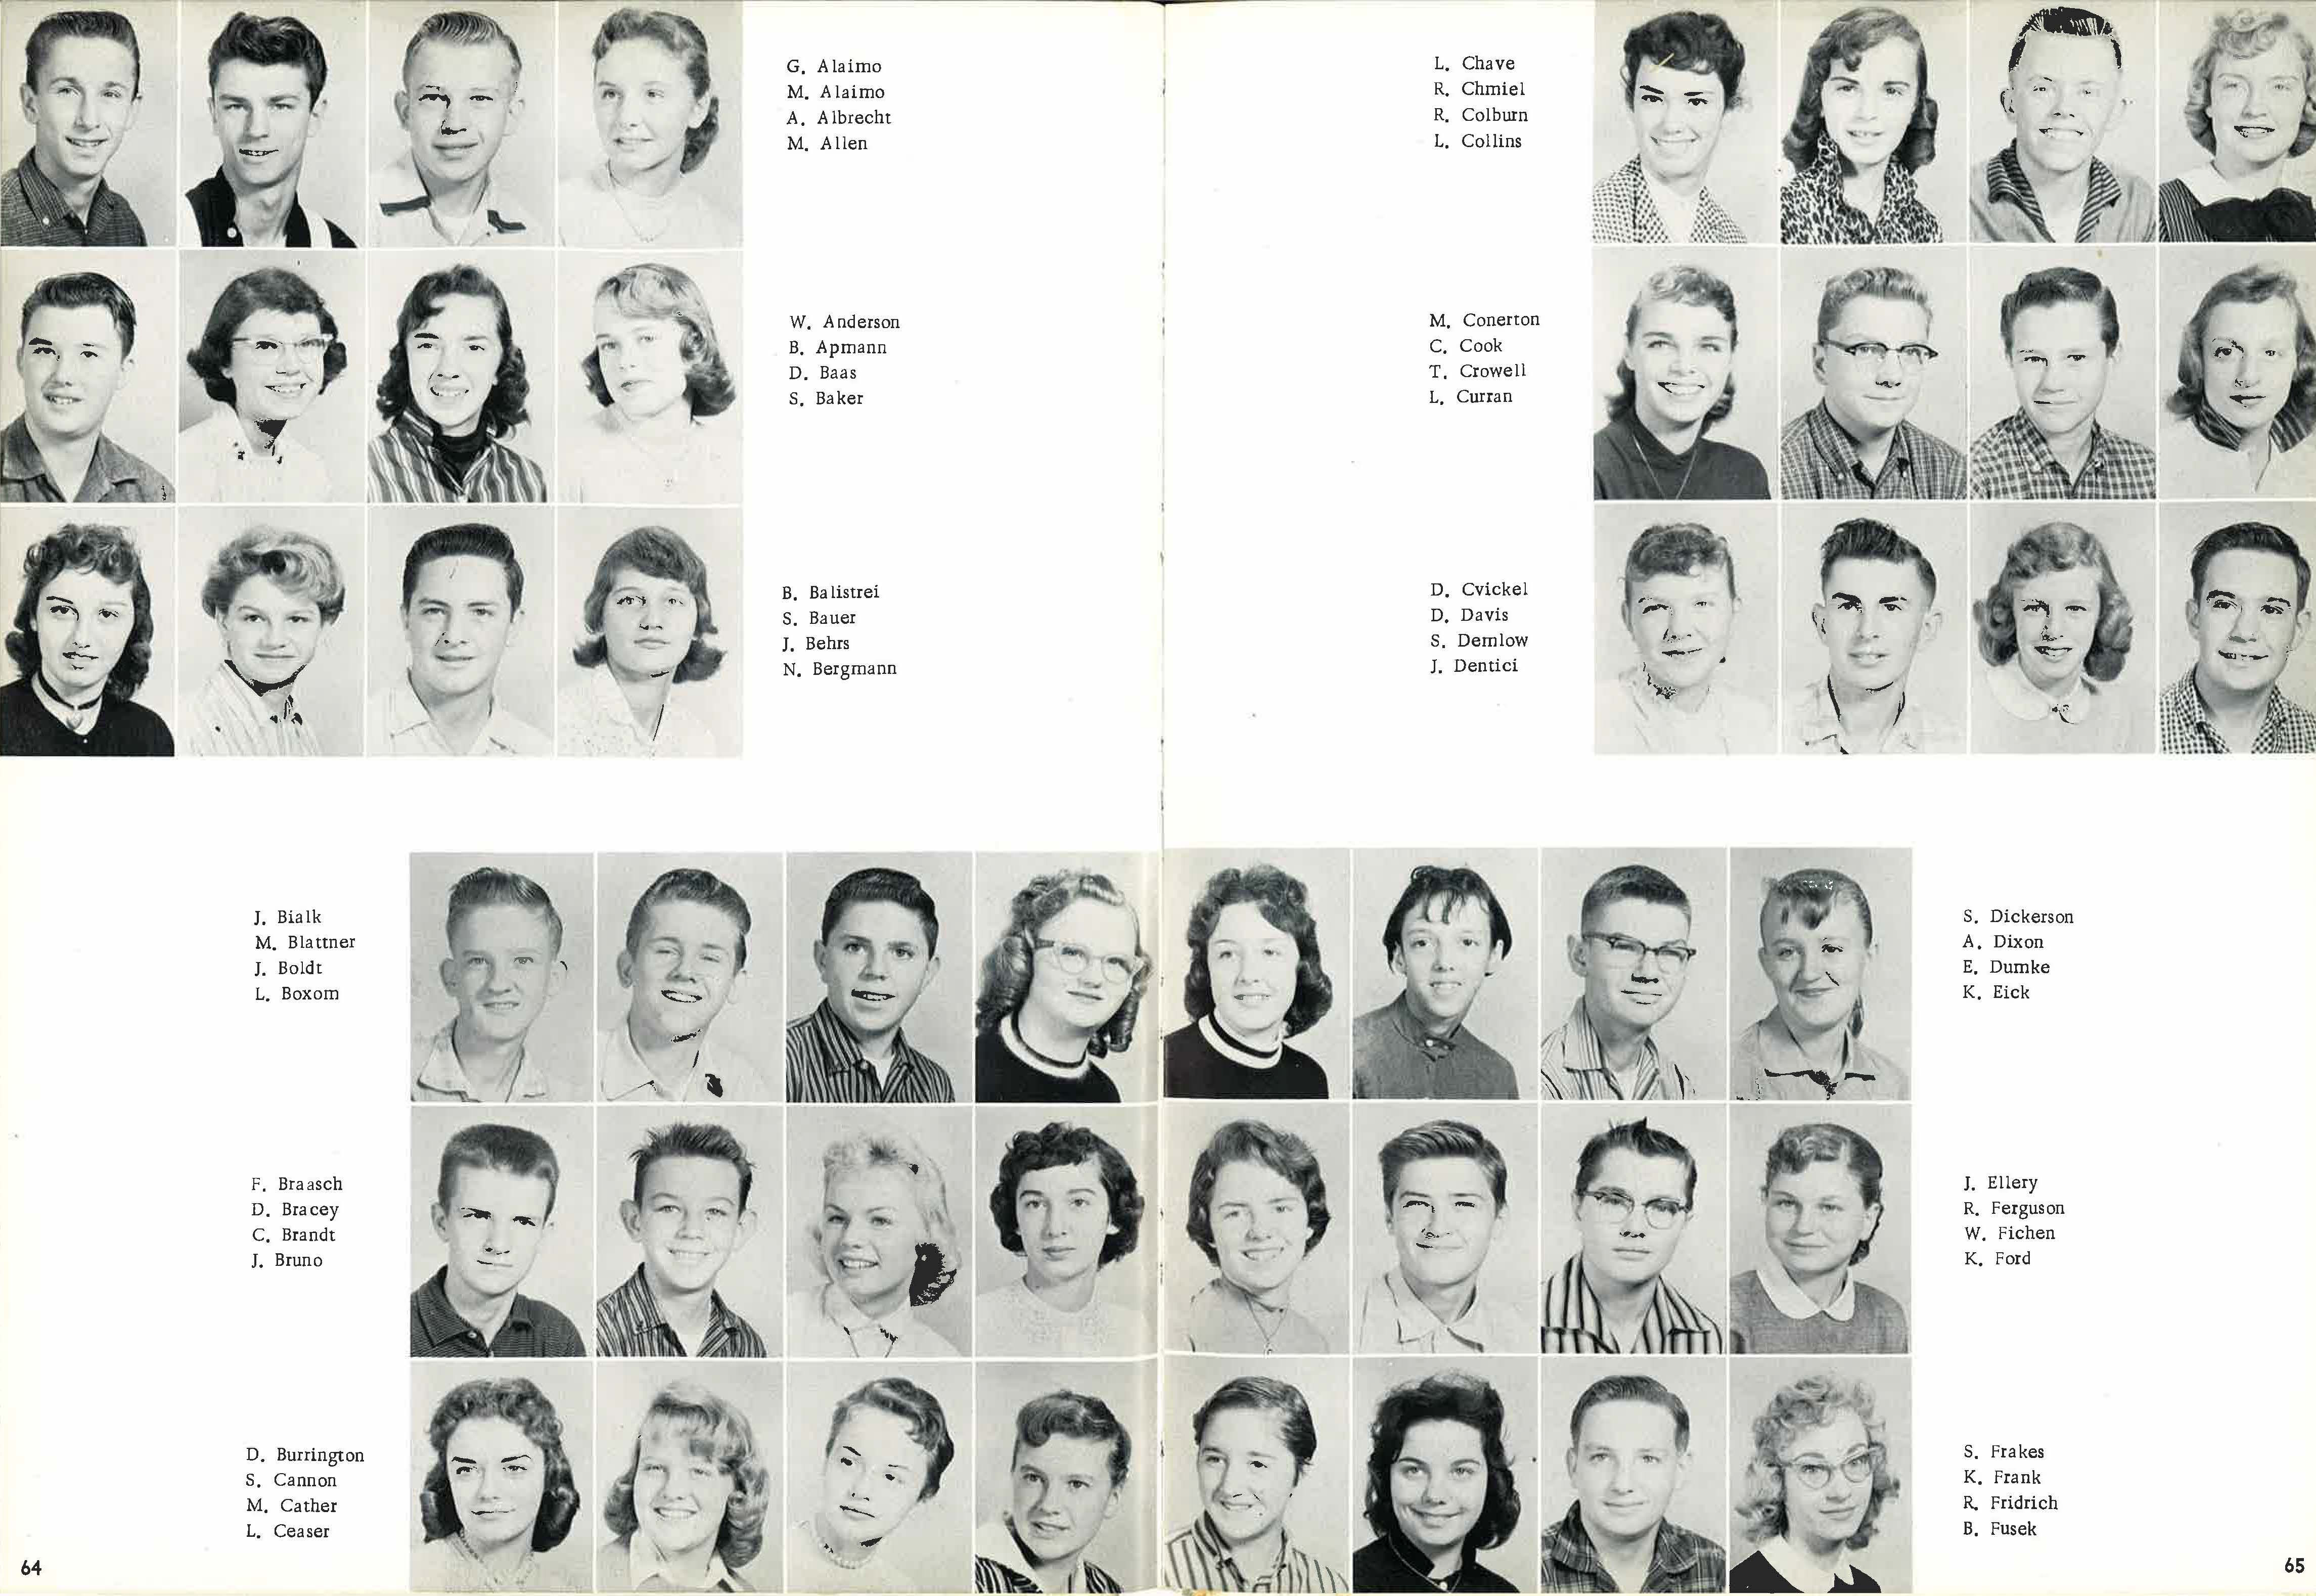 1958_Yearbook_64-65.jpg